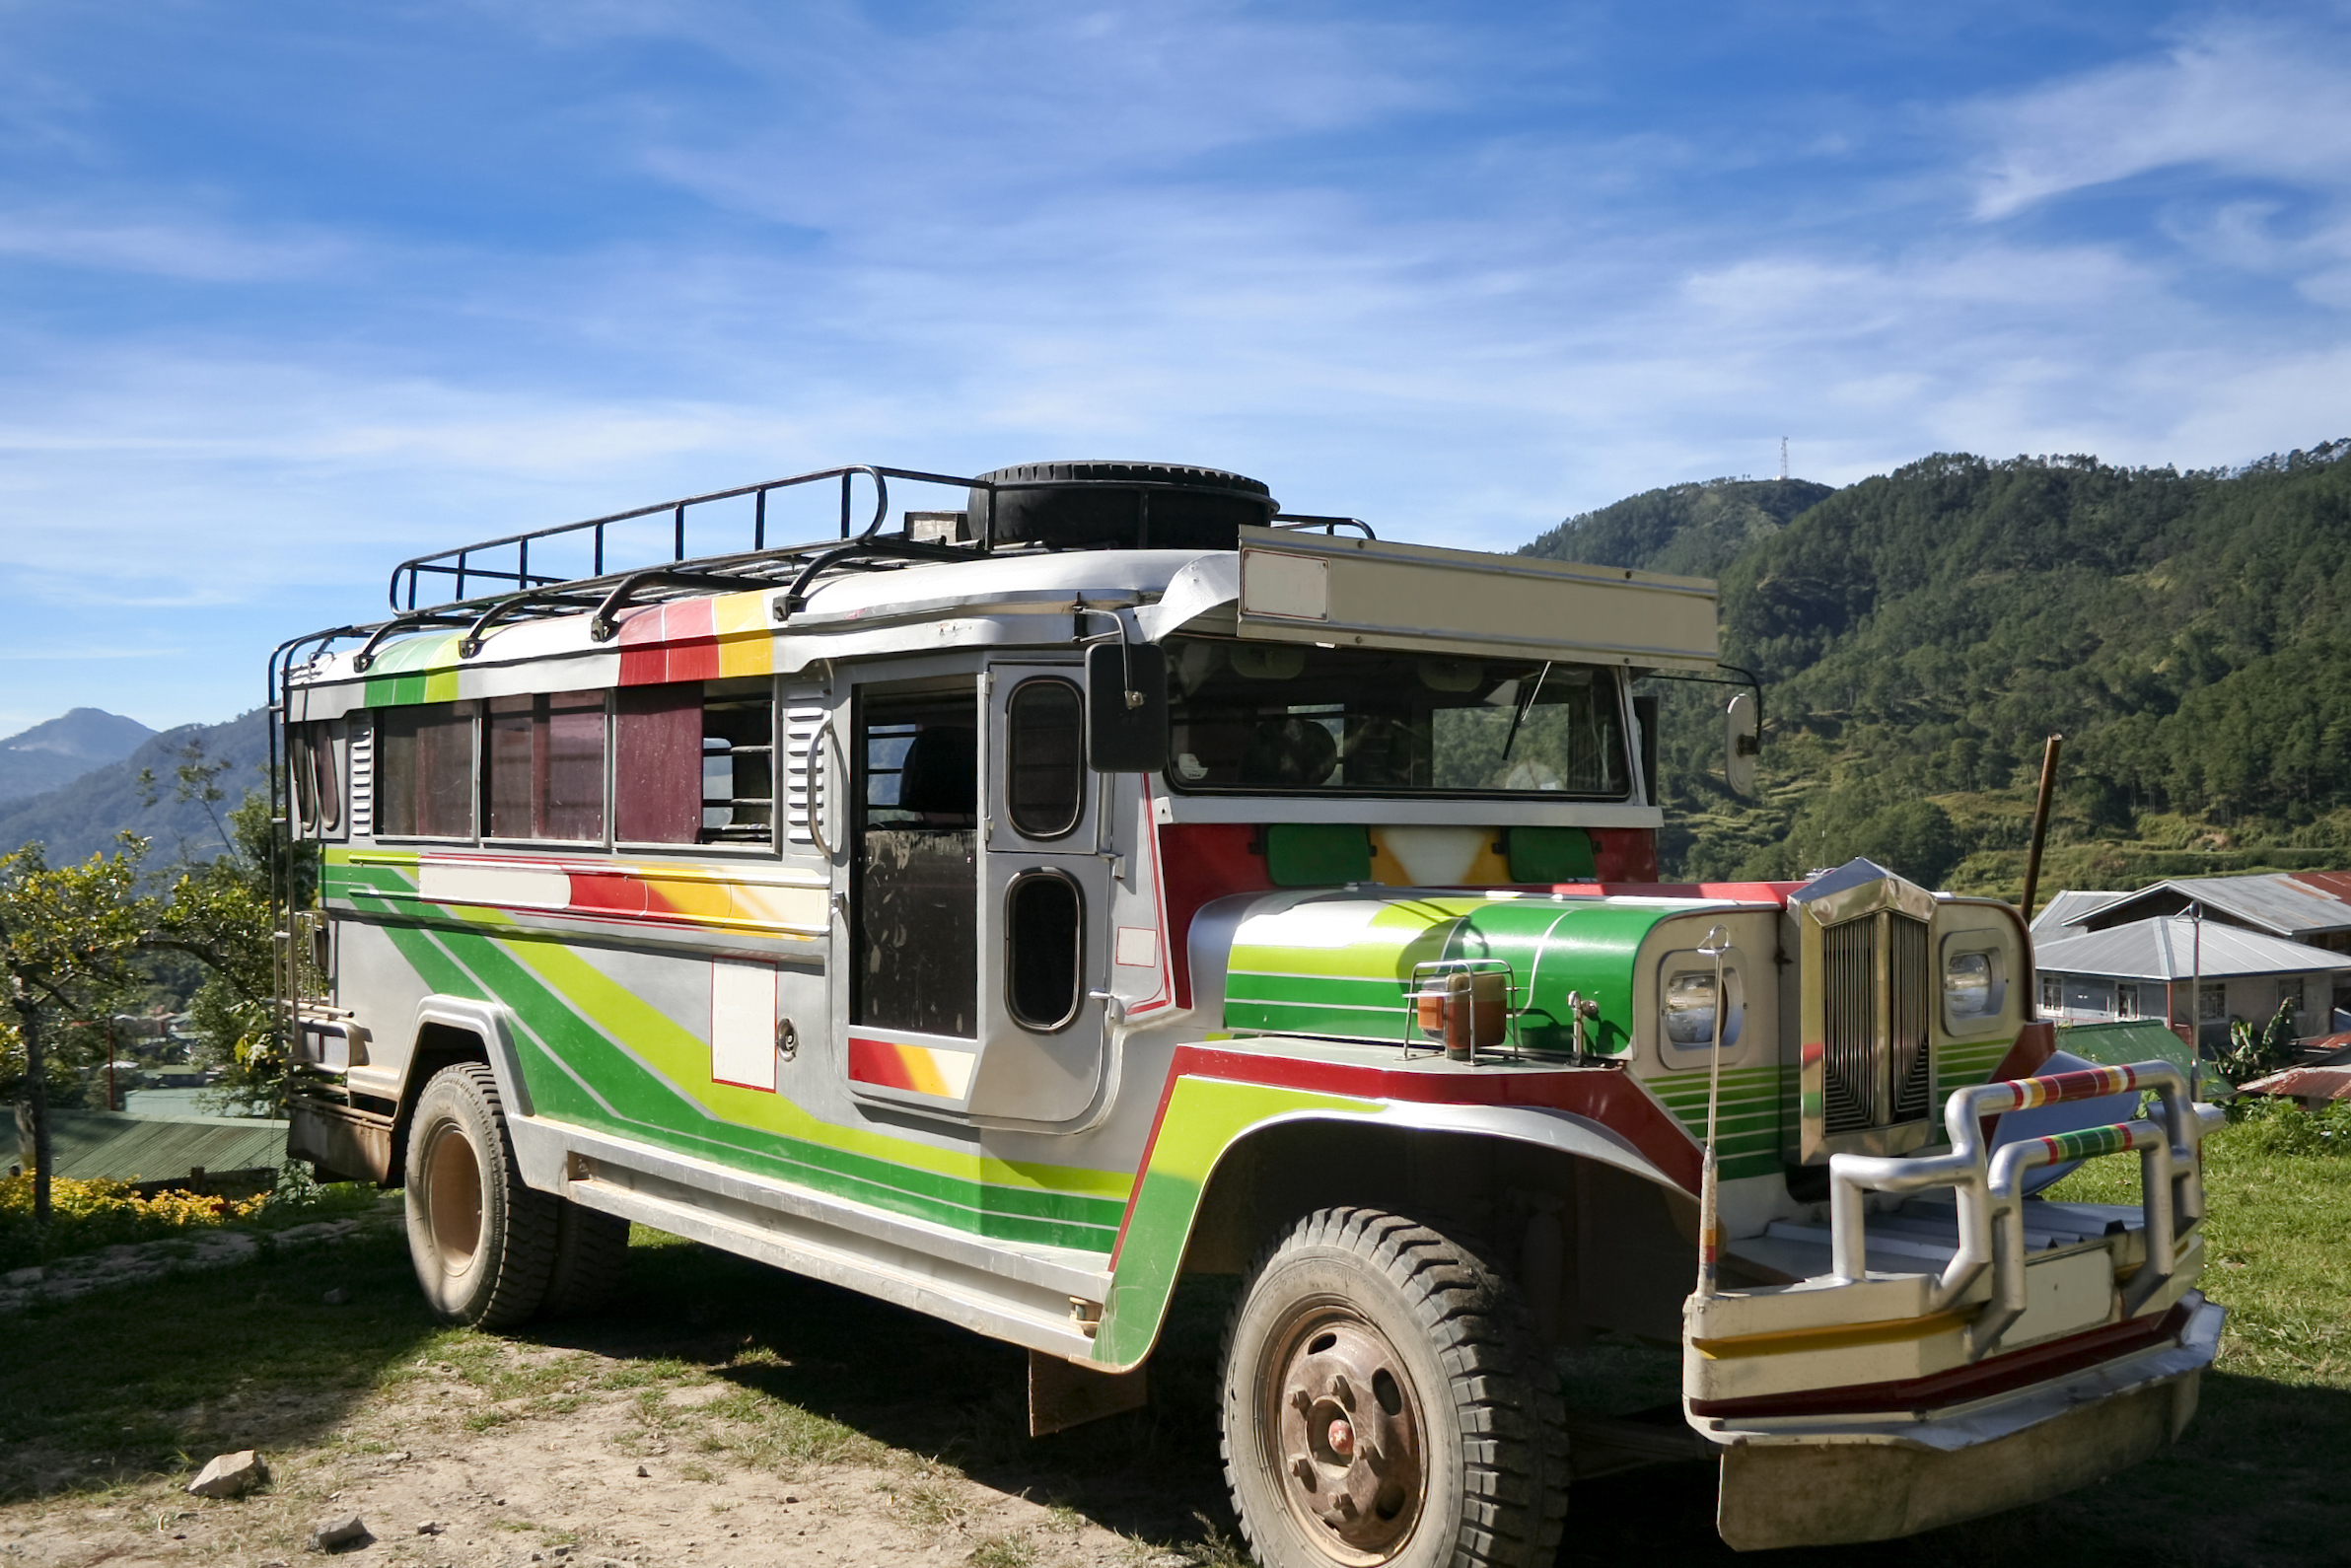 Traditional jeepney, popular form of Philippines public transport